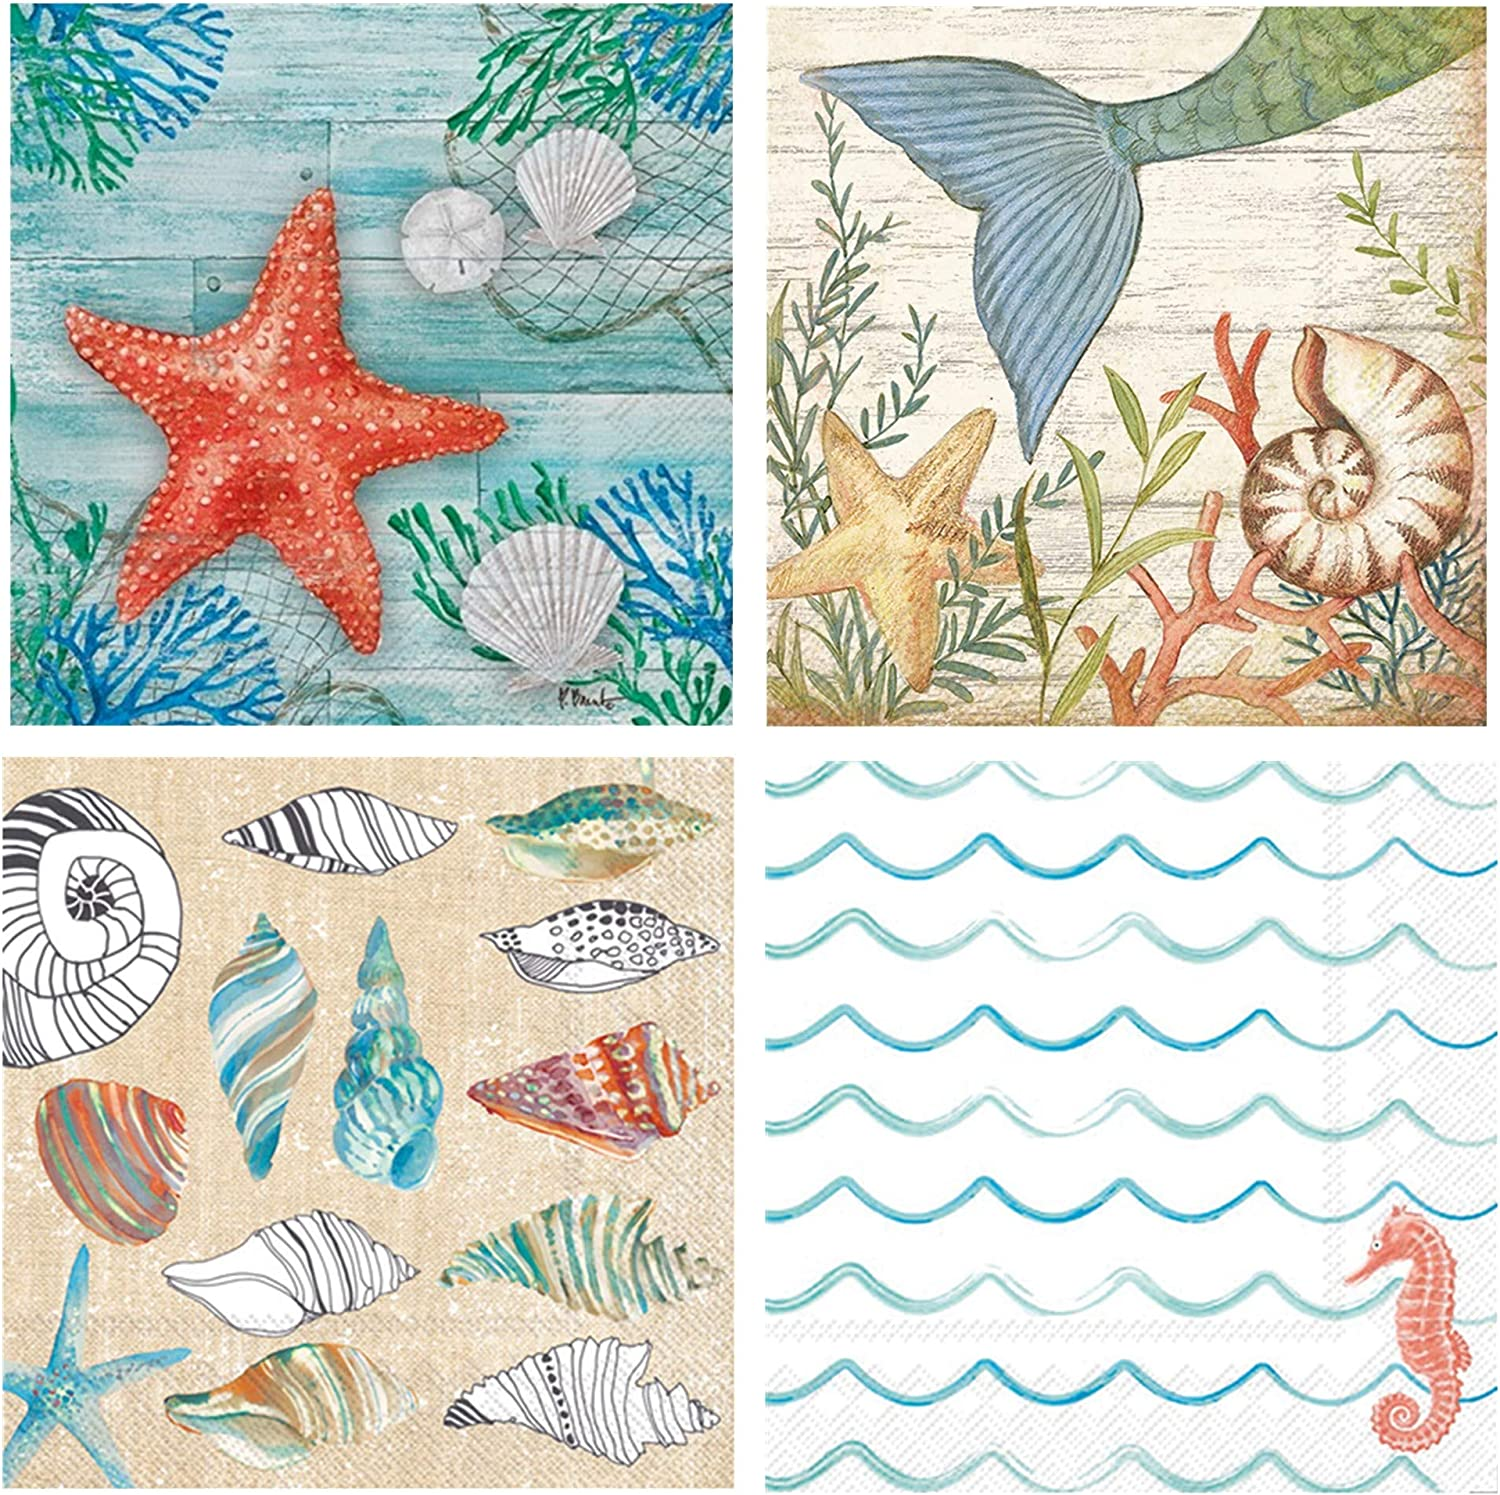 Boston International 20 Count 3-Ply Paper Cocktail Napkins, Set of 4, Starfish, Beach, Mermaid and Shell